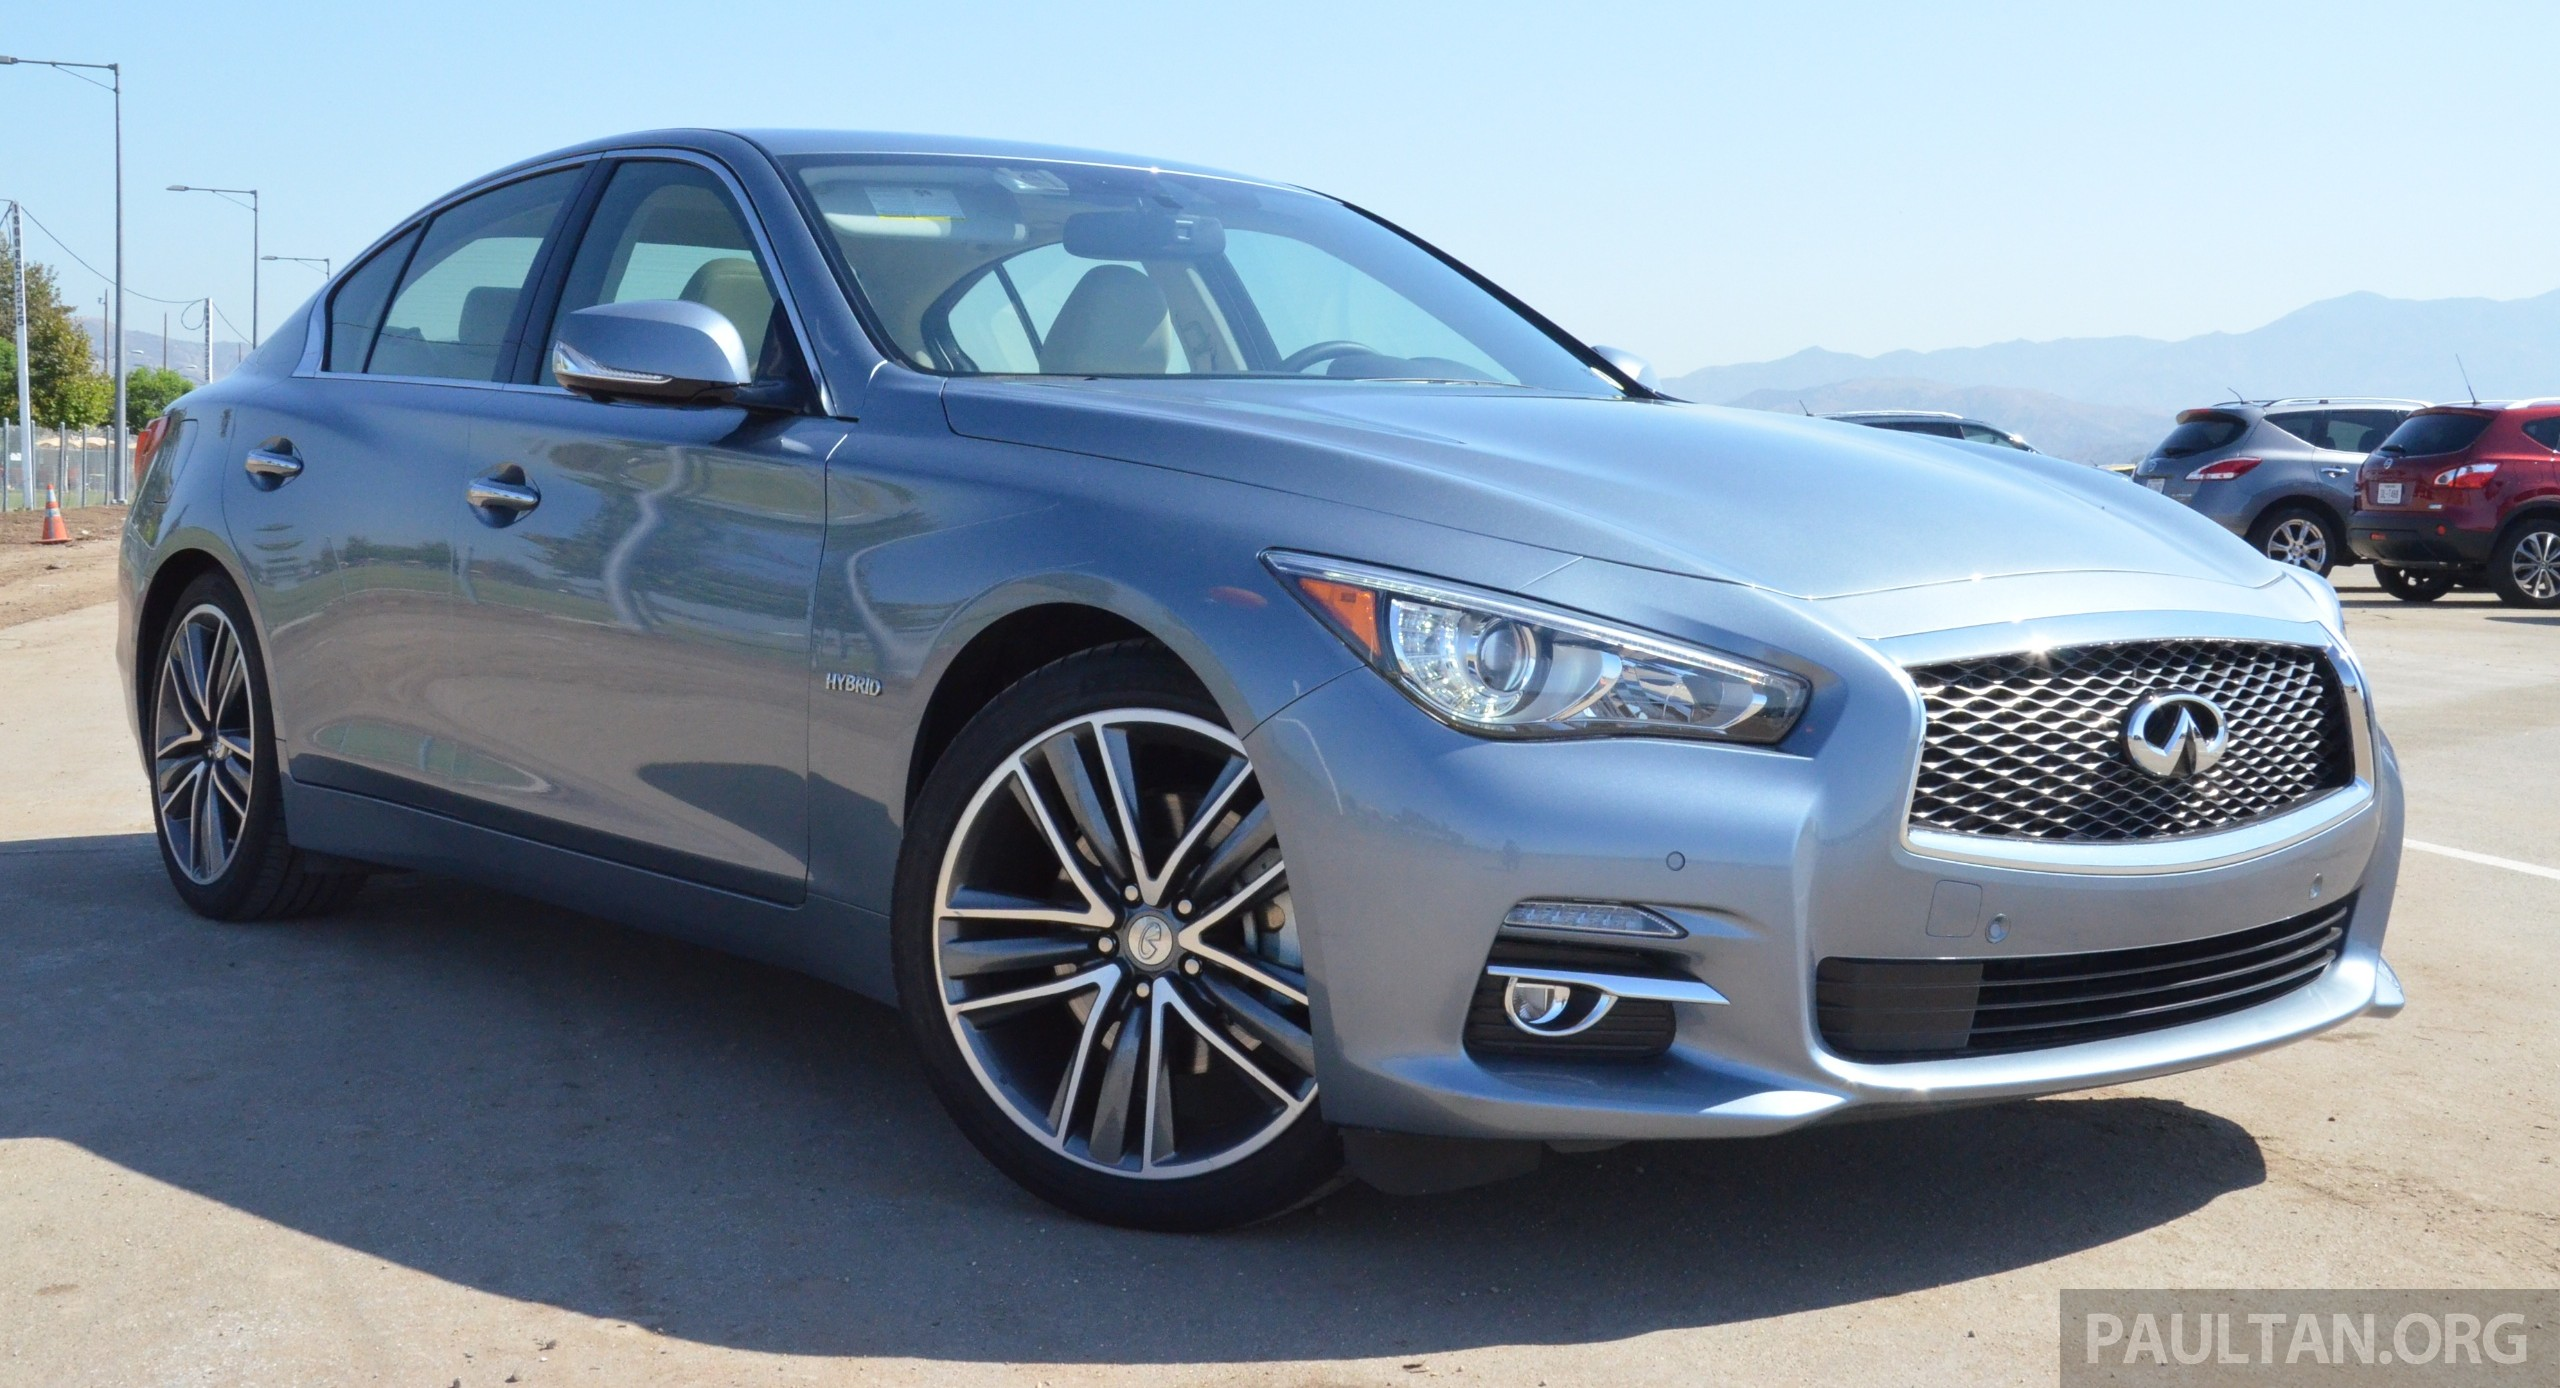 driven infiniti q50 a first taste of steer by wire. Black Bedroom Furniture Sets. Home Design Ideas